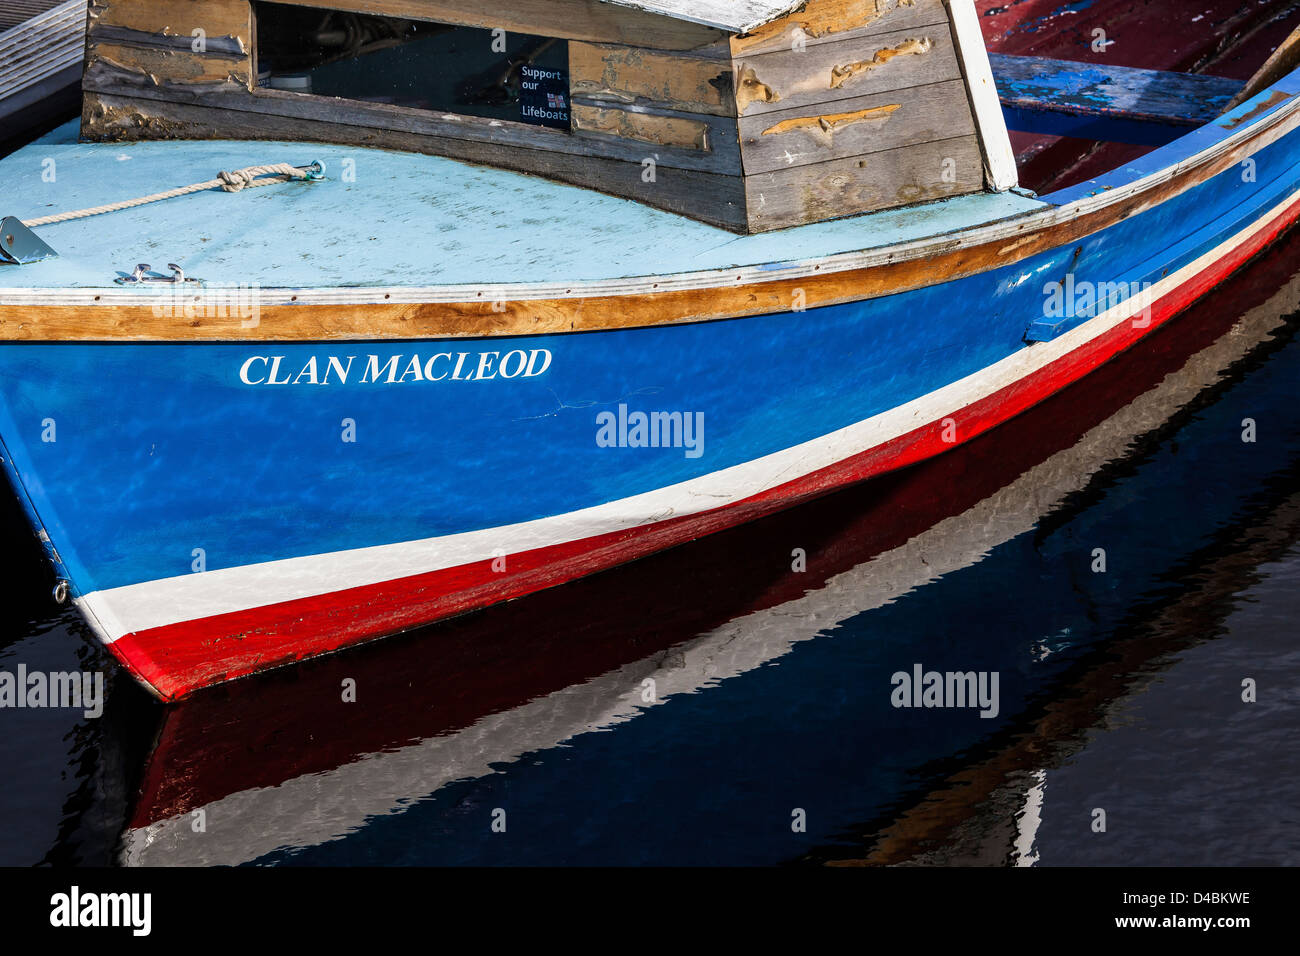 Fishing boat 'CLAN MACLEOD' at Nairn harbour in Scotland. - Stock Image